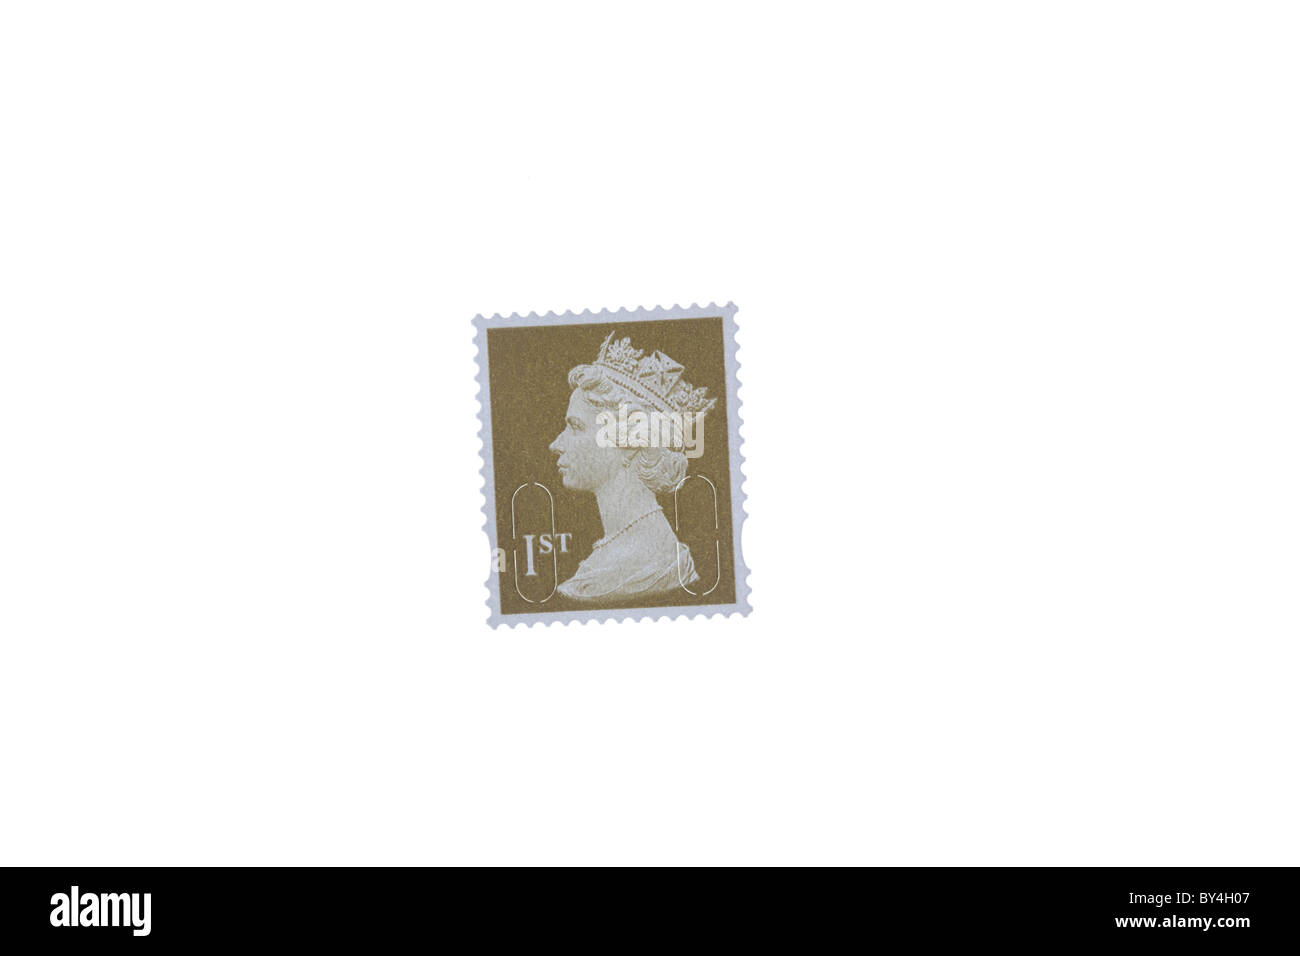 1st Class postage stamp - Stock Image